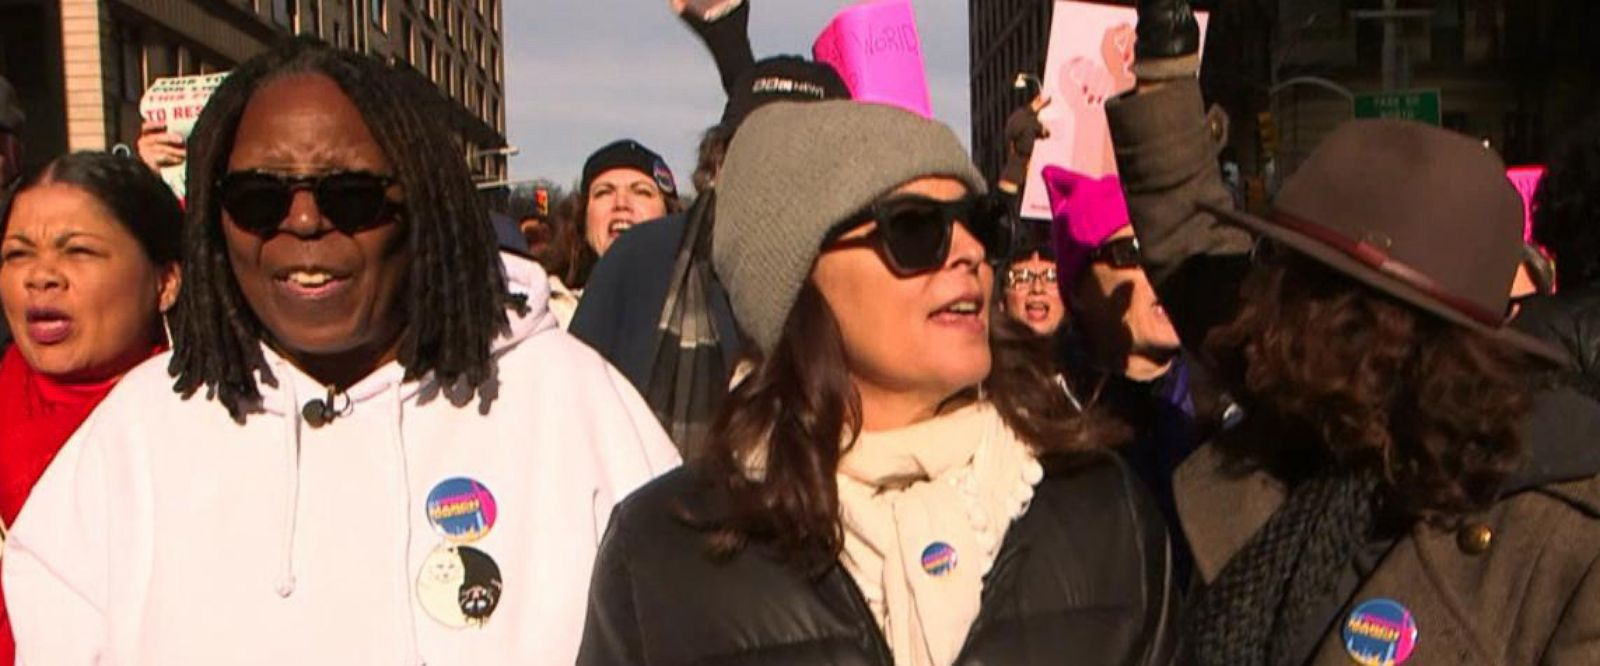 VIDEO: Whoopi Goldberg joins NYC Women's March